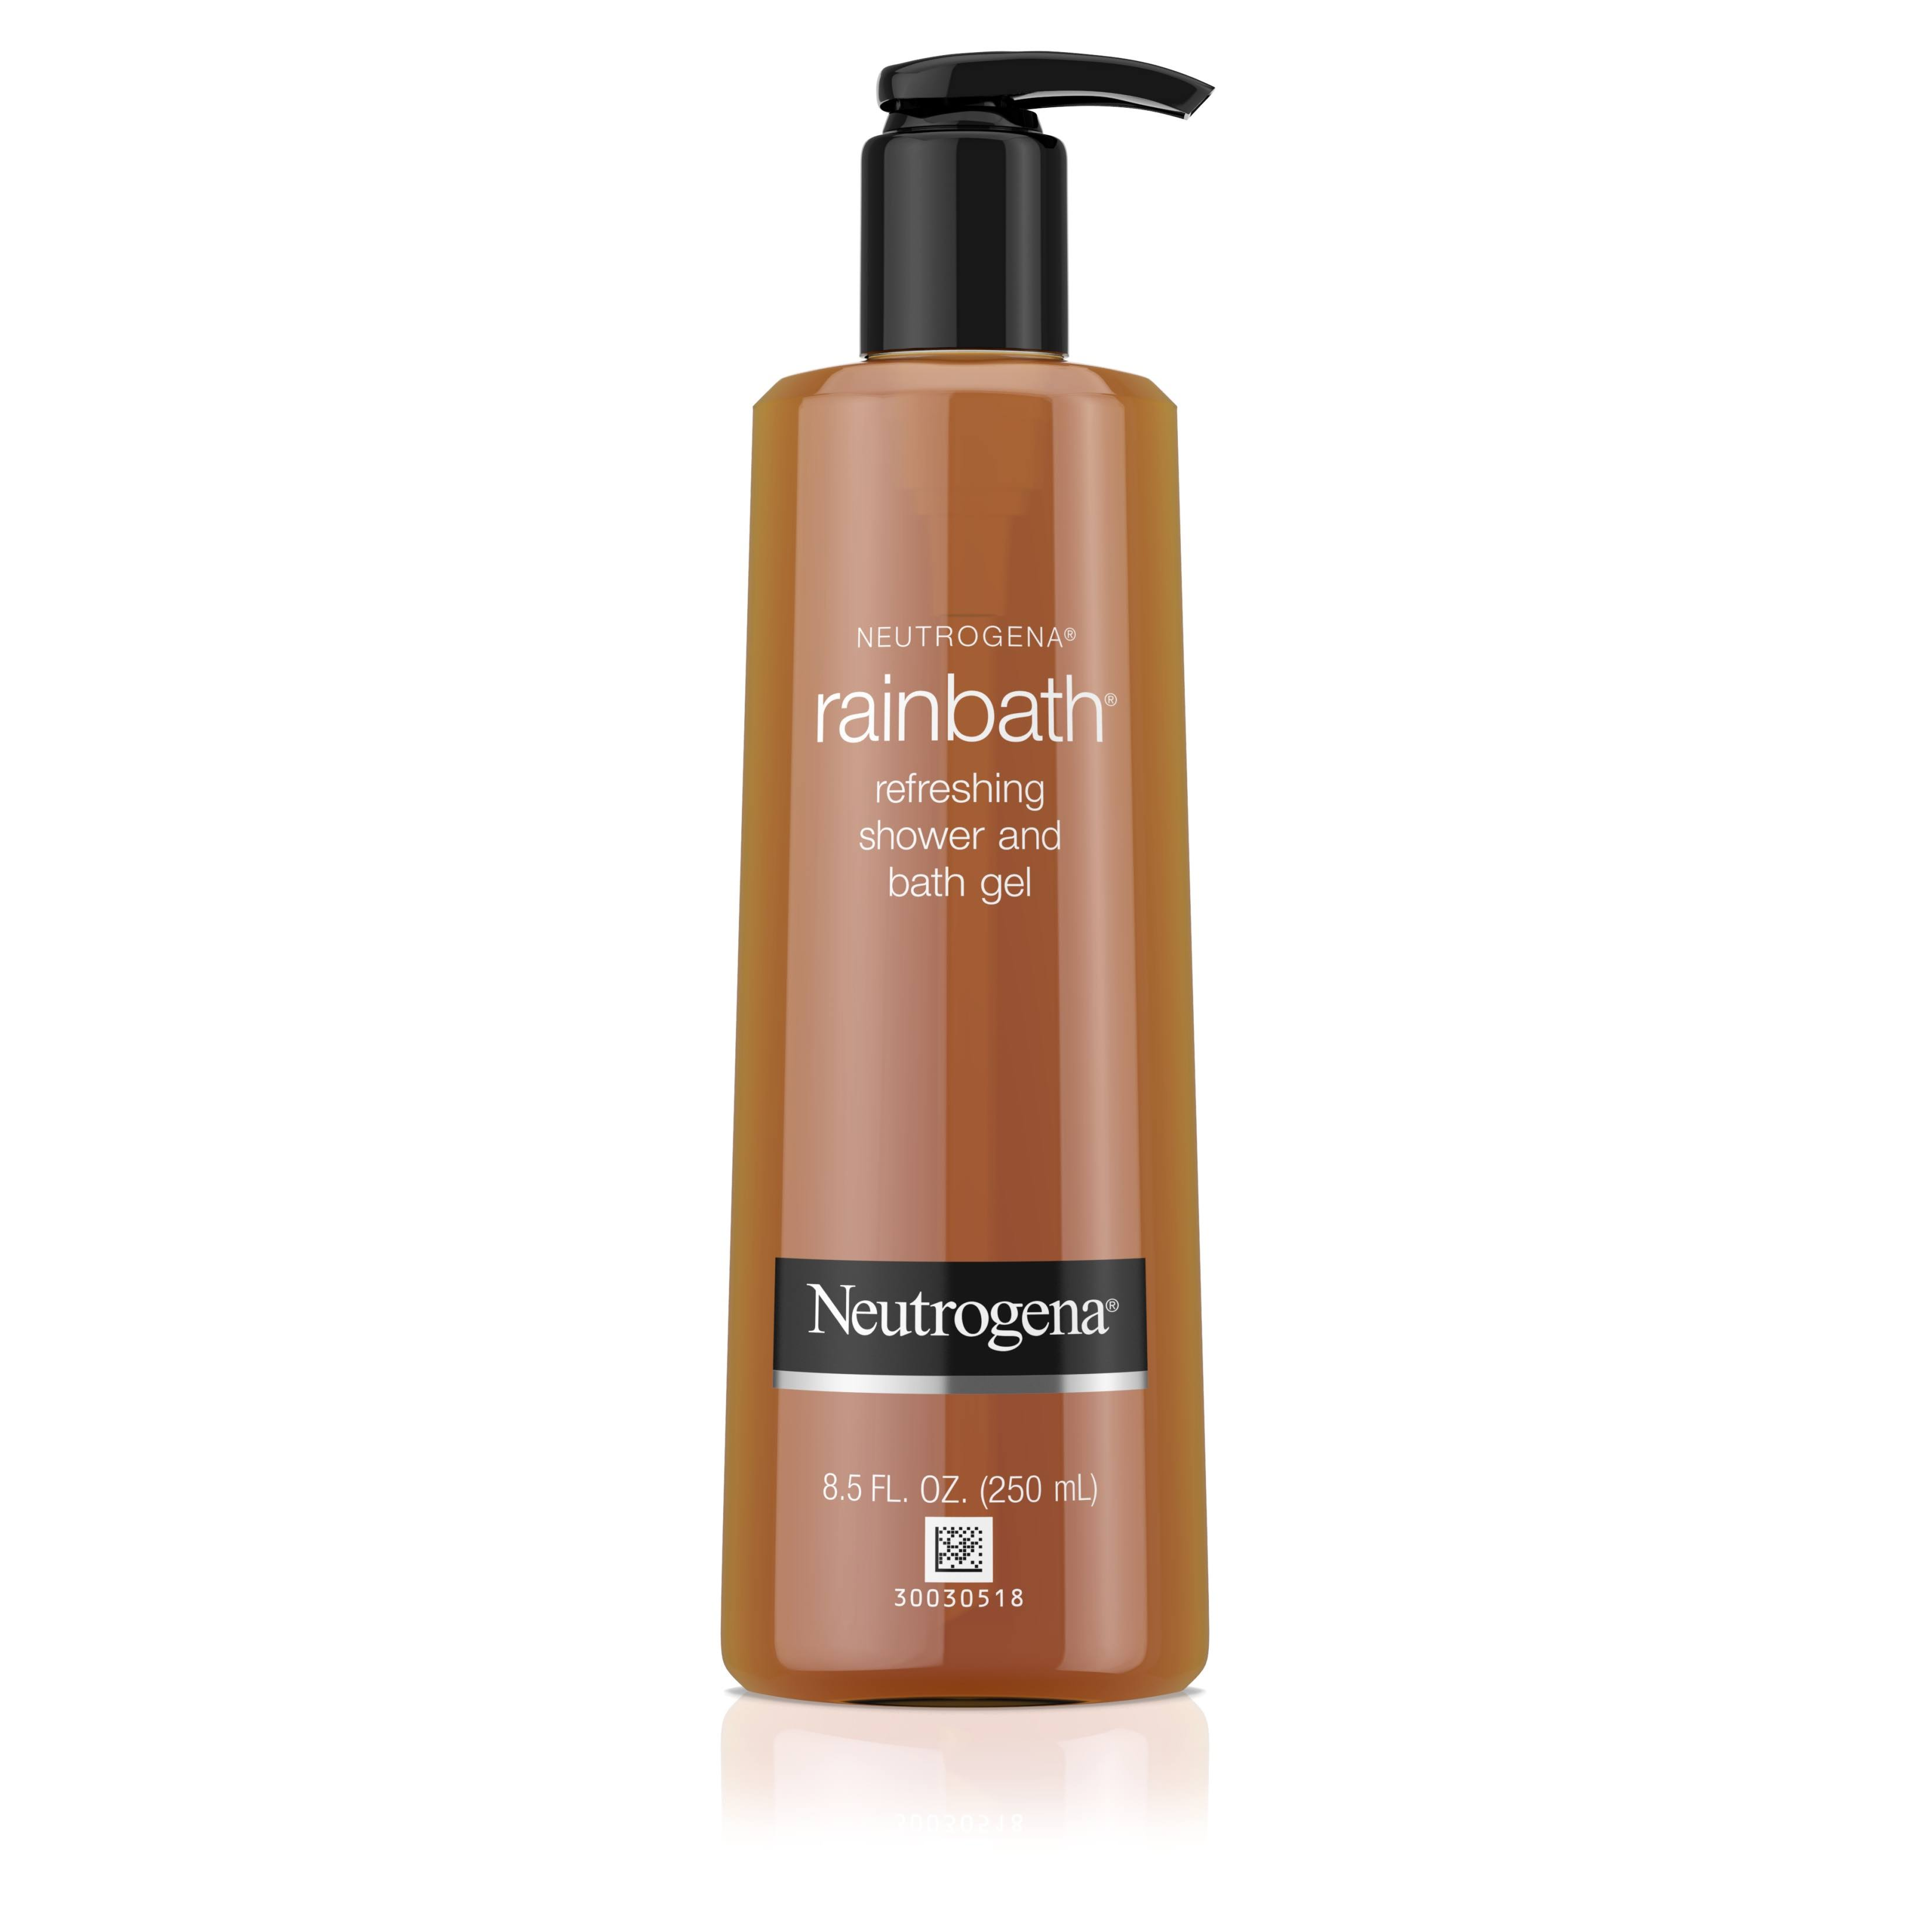 Neutrogena Rainbath Shower Bath